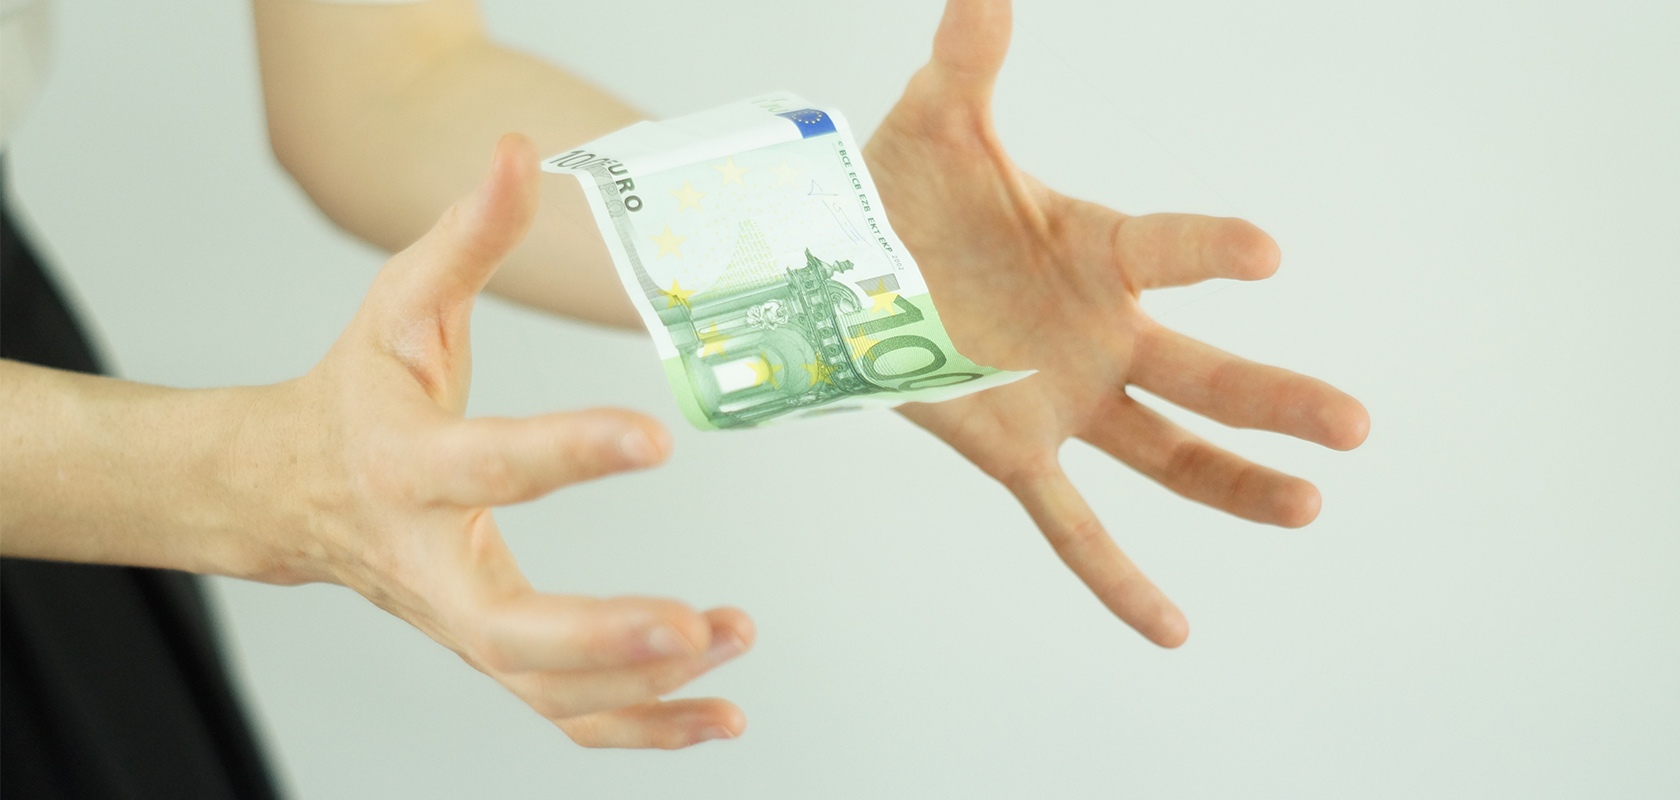 A Euro note slipping out of a woman's hands